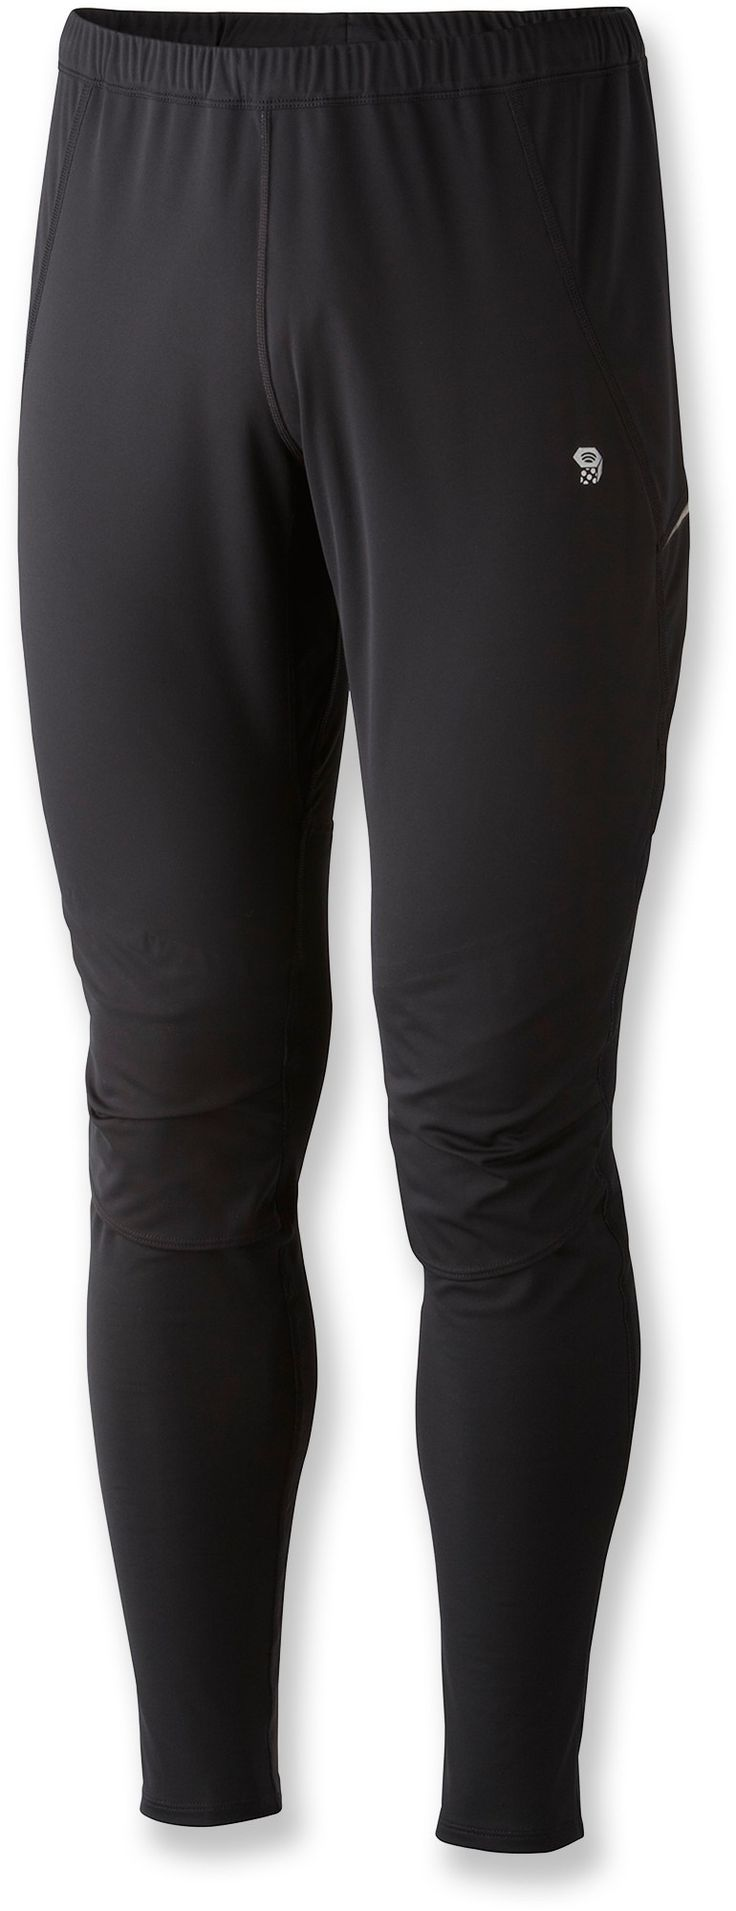 Mountain Hardwear Effusion Power Tights - Men's - 2013 Closeout Running/Cross Country skiing tight